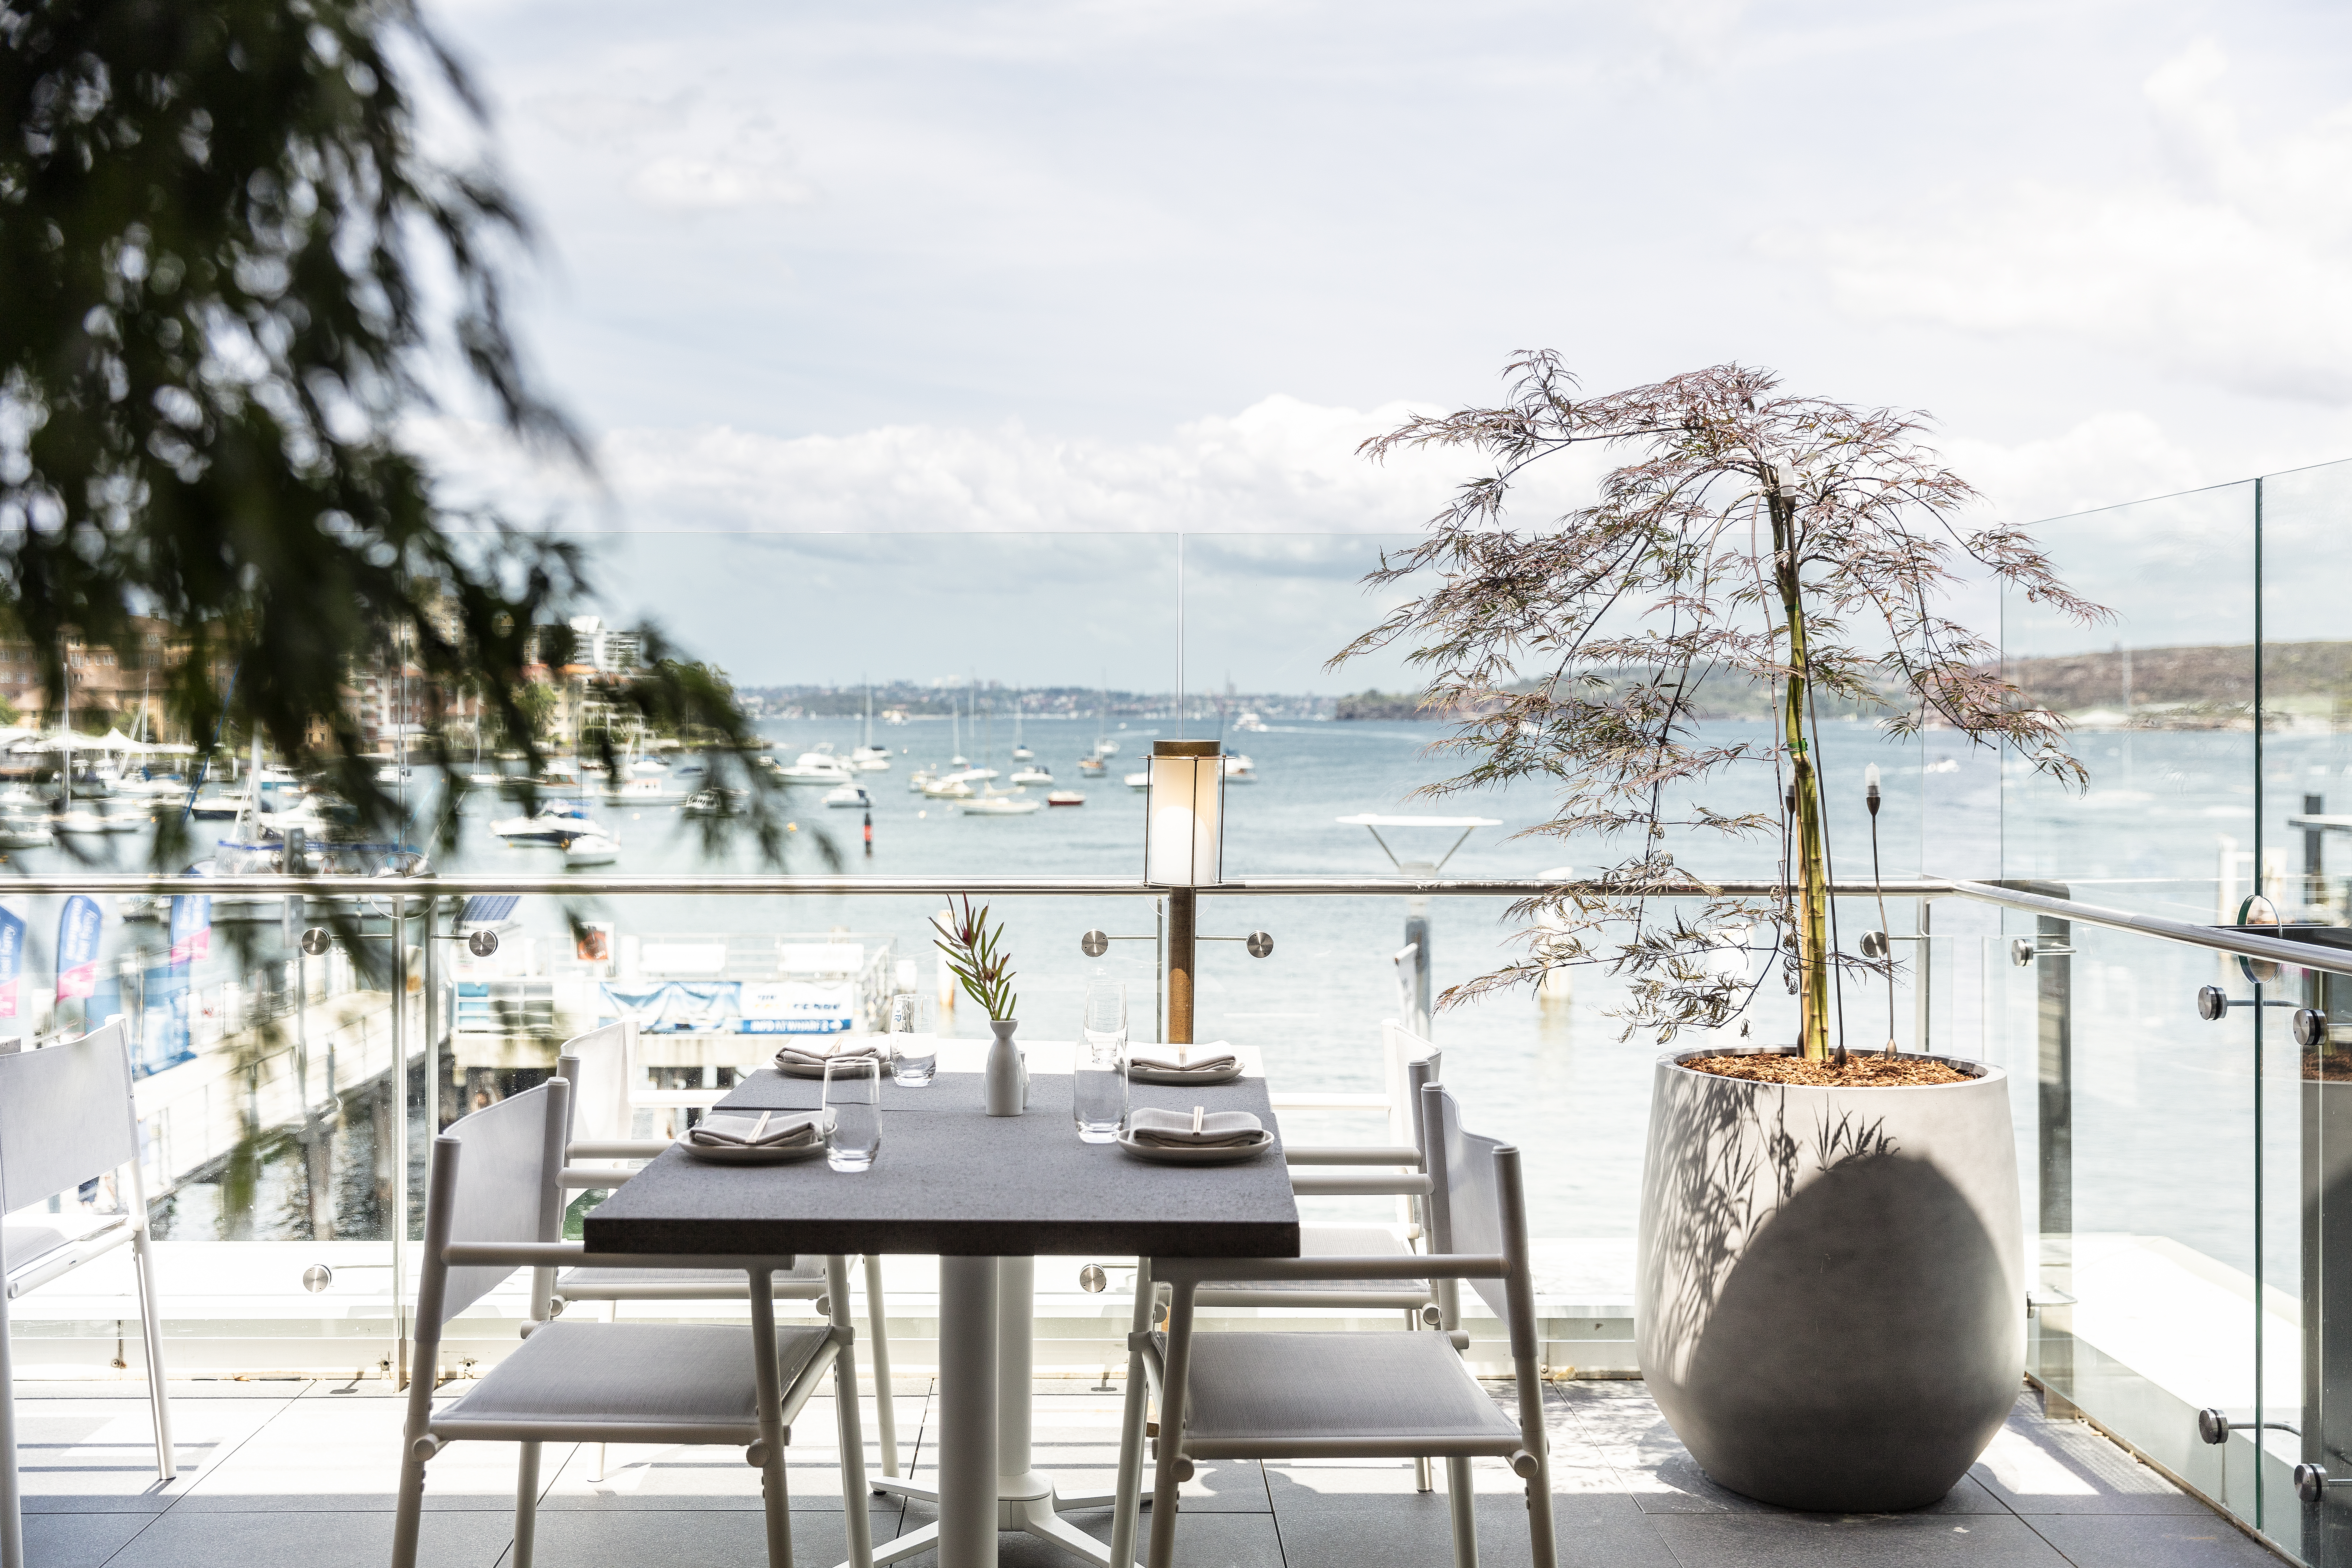 Rockpool Dining Group prepares to re-open restaurants